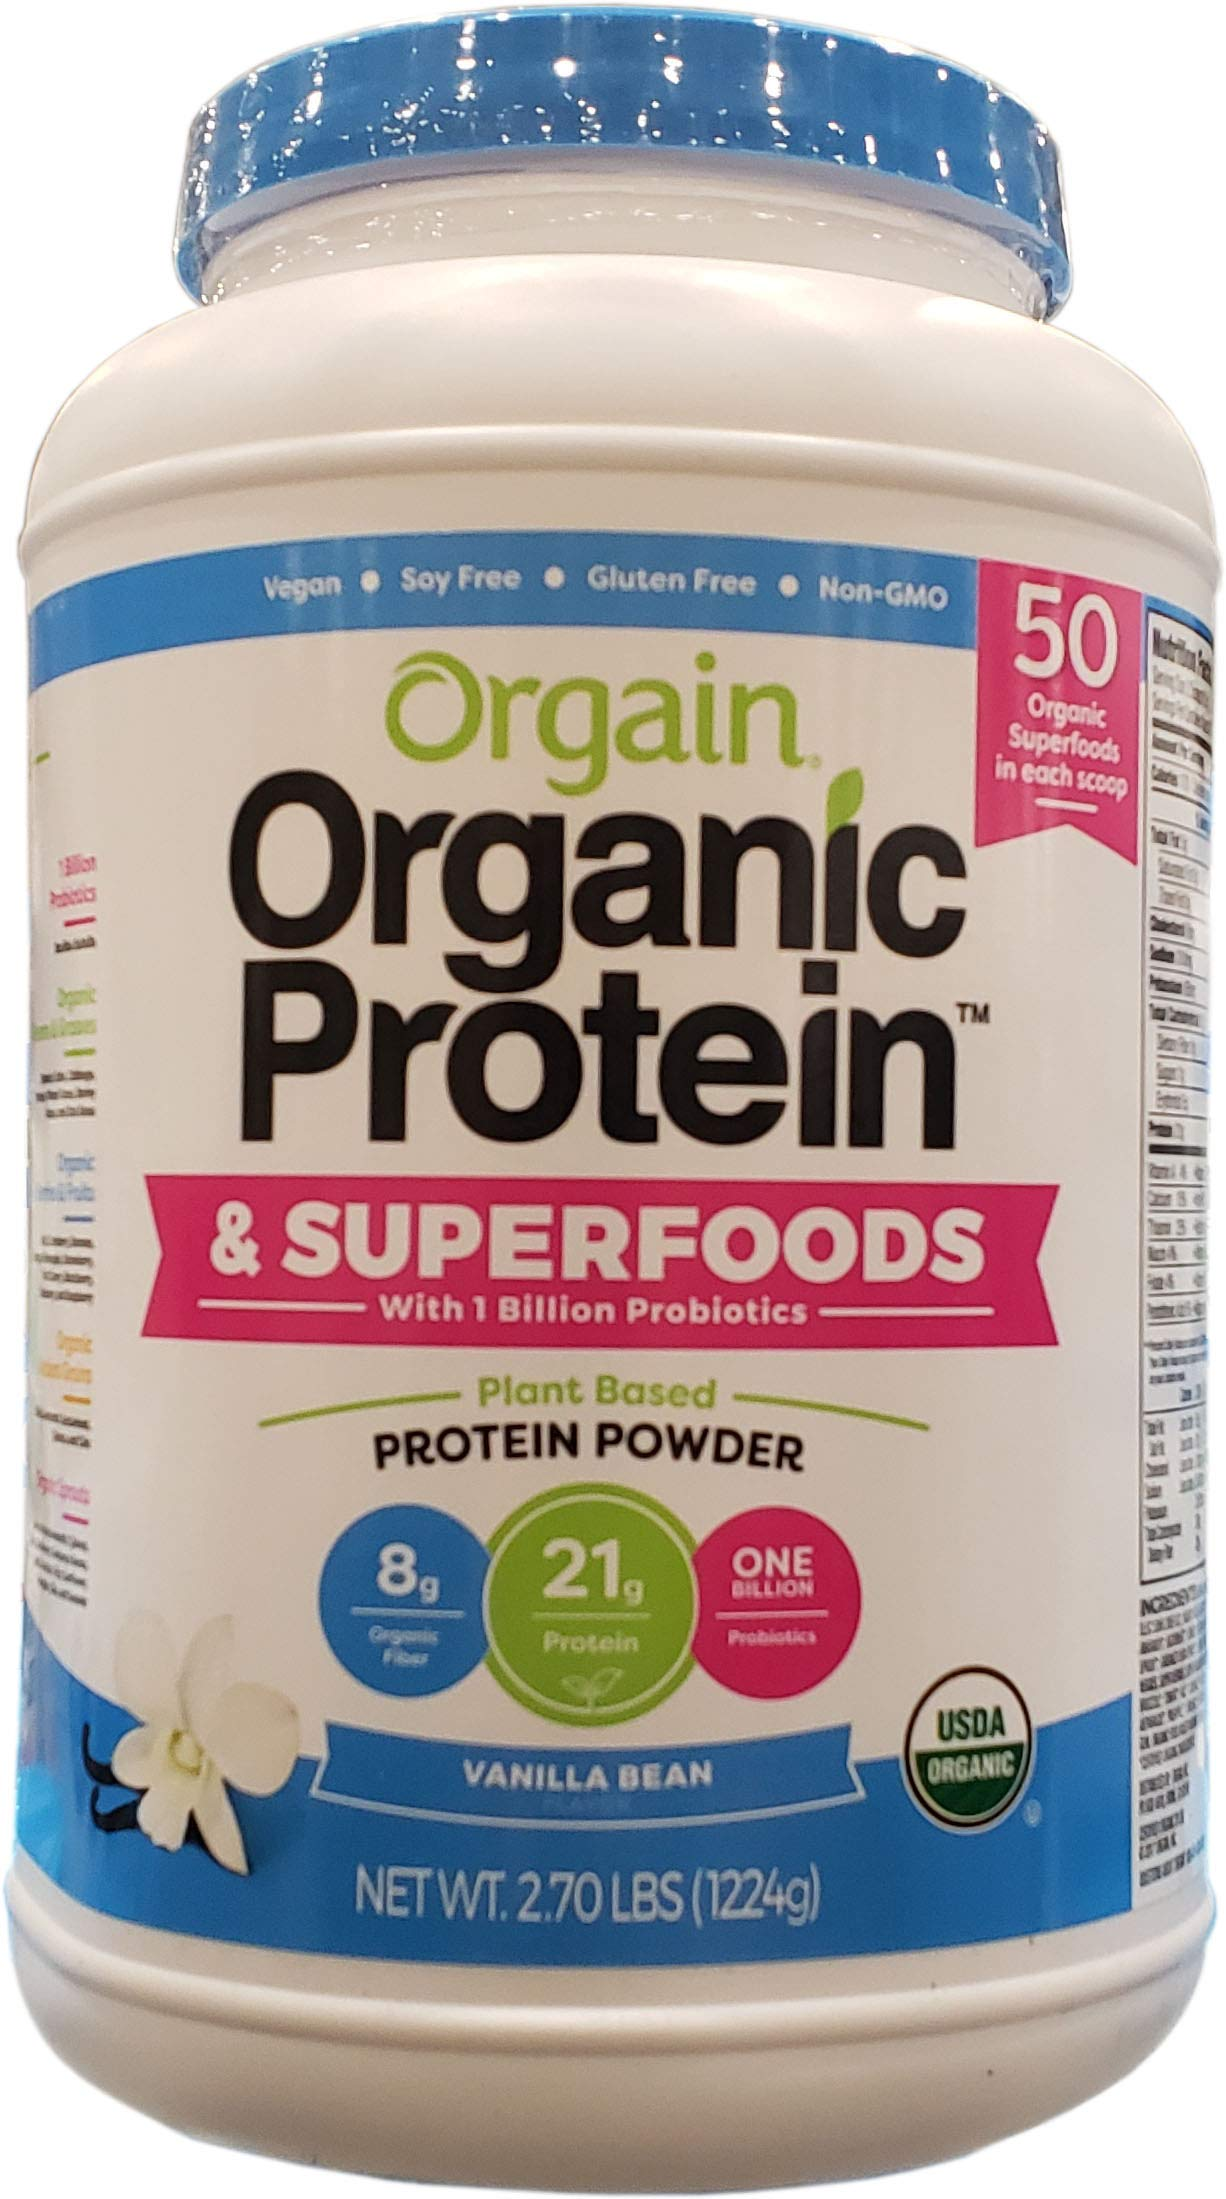 Orgain Organic Protein And Super Foods, 2.70 Pound by Orgain